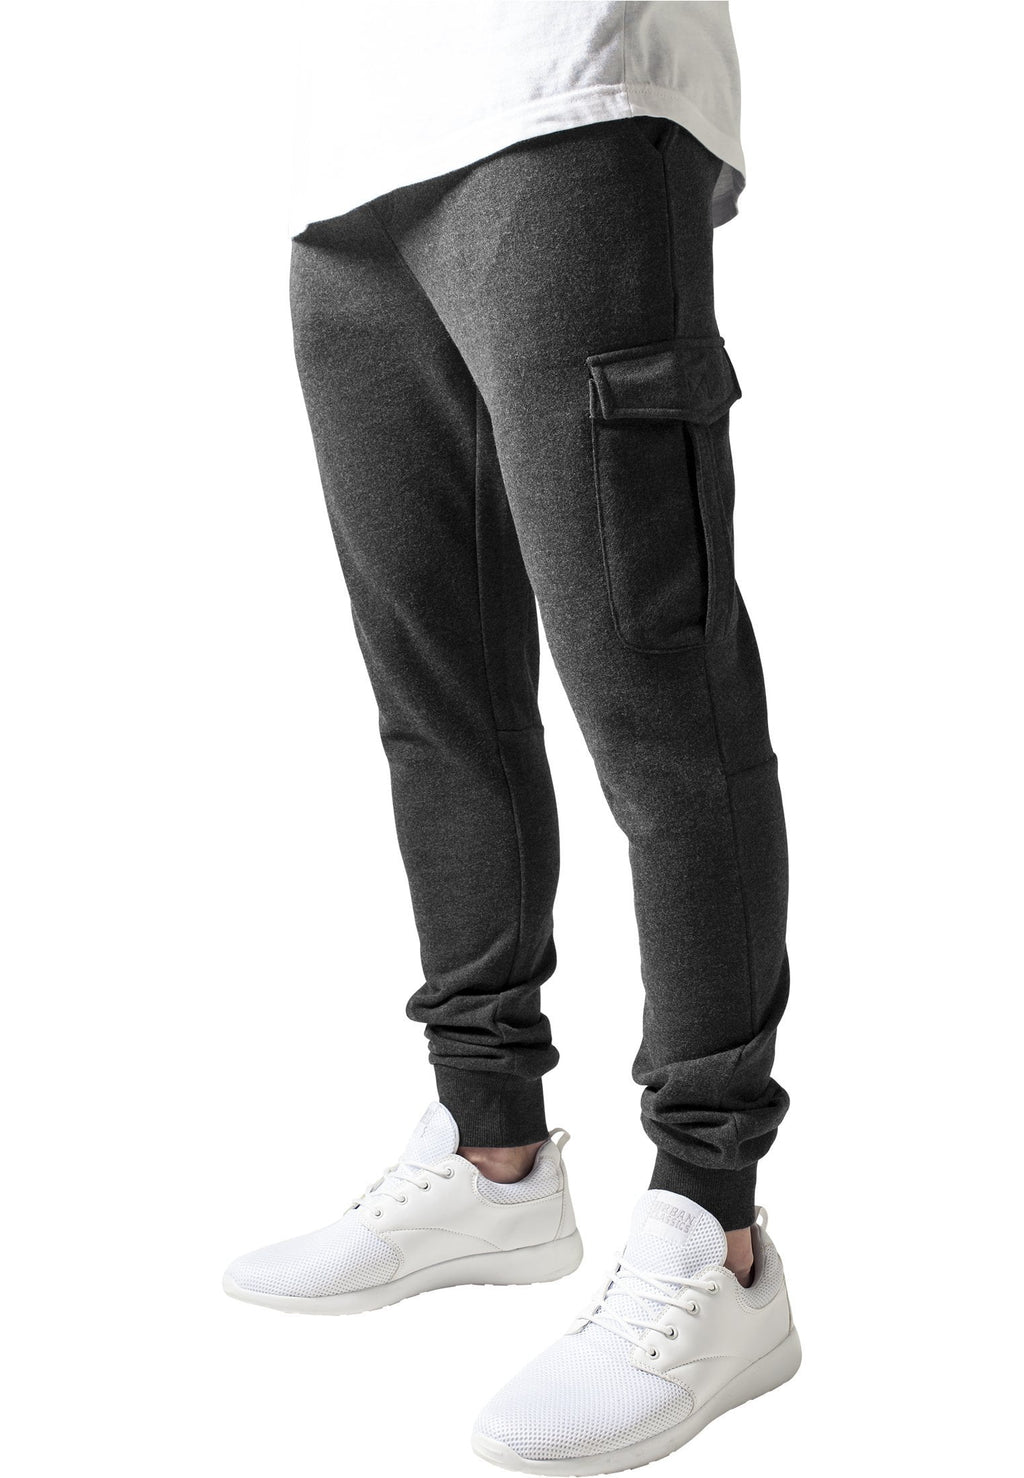 Fitted Cargo Sweatpants - Grey